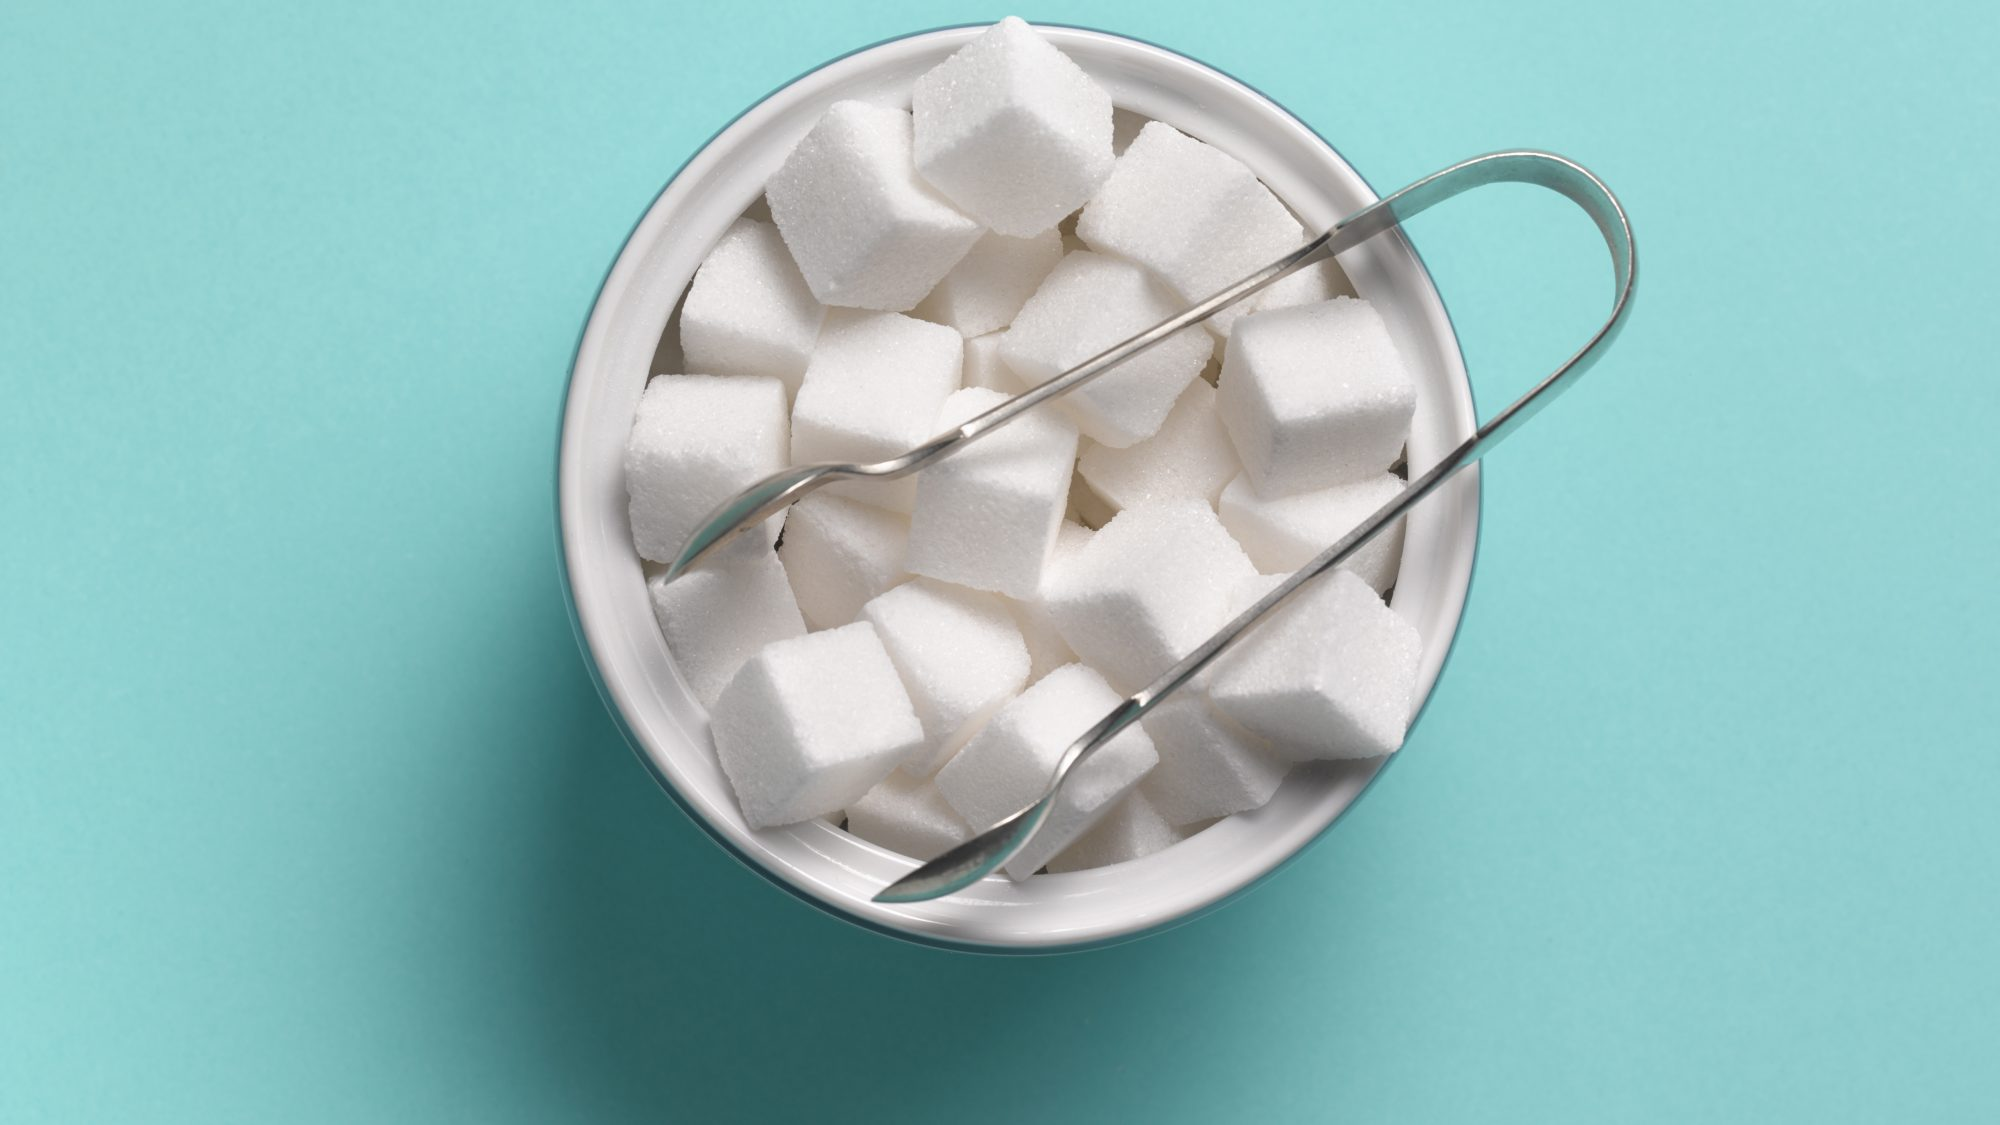 foods-that-never-expire: sugar cubes in a bowl